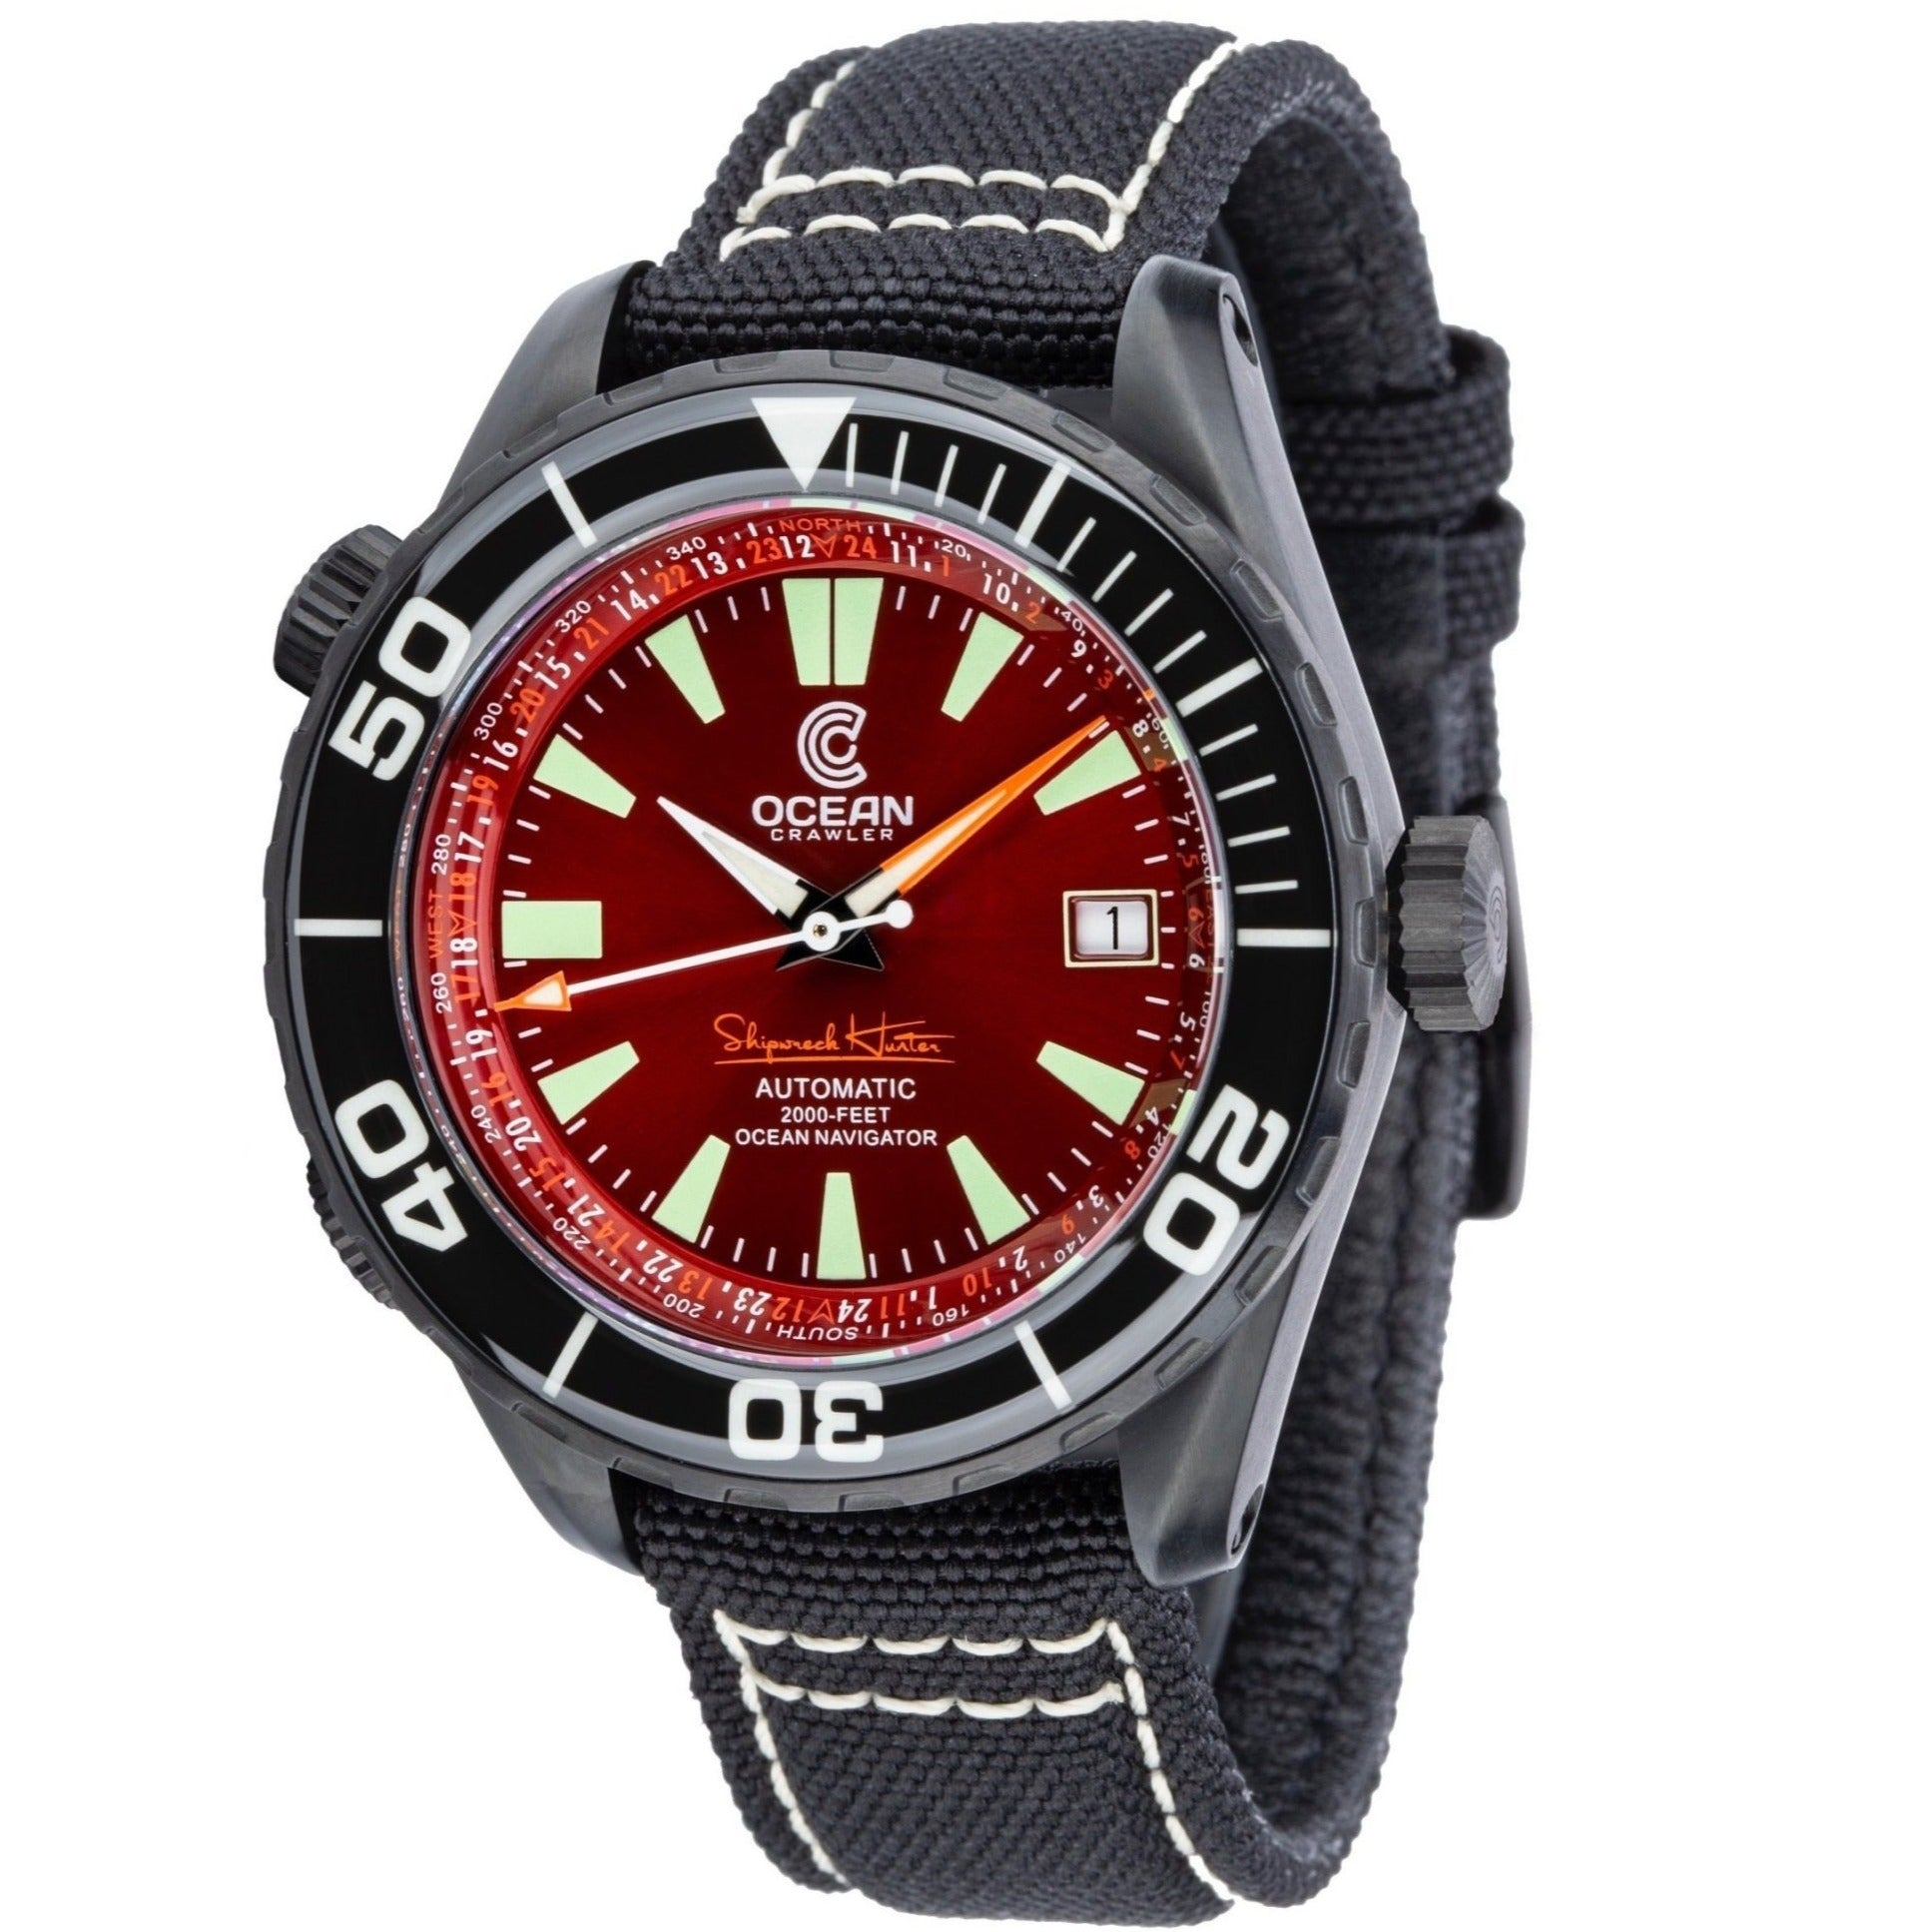 Ocean Crawler Ocean Navigator - DLC - Red - Ocean Crawler Watch Co.